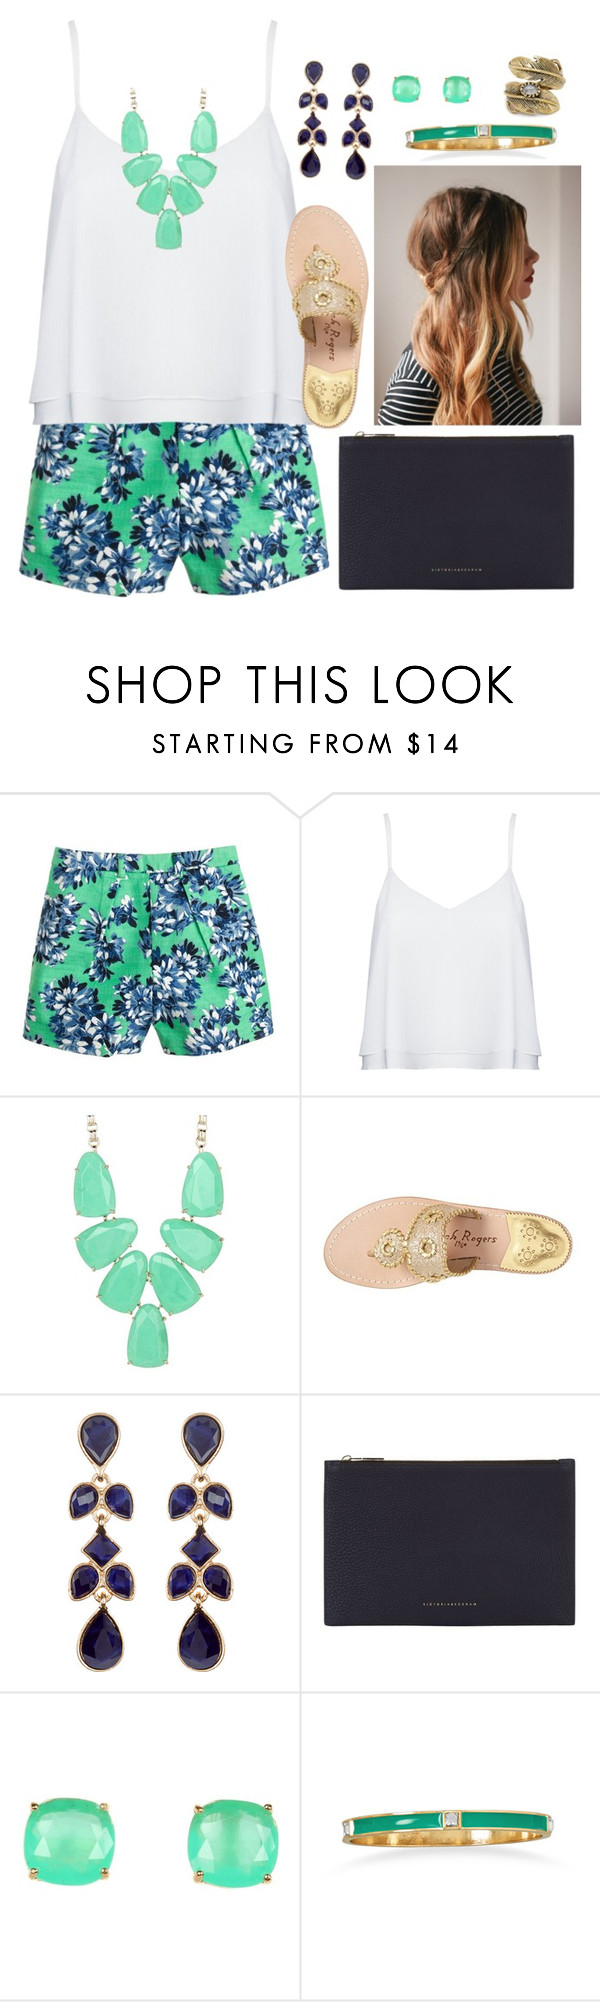 """""""Forgiveness"""" by stephanie-erin ❤ liked on Polyvore featuring J.Crew, Alice + Olivia, Kendra Scott, Jack Rogers, Accessorize, Victoria Beckham, Kate Spade, Natalie B, women's clothing and women's fashion"""